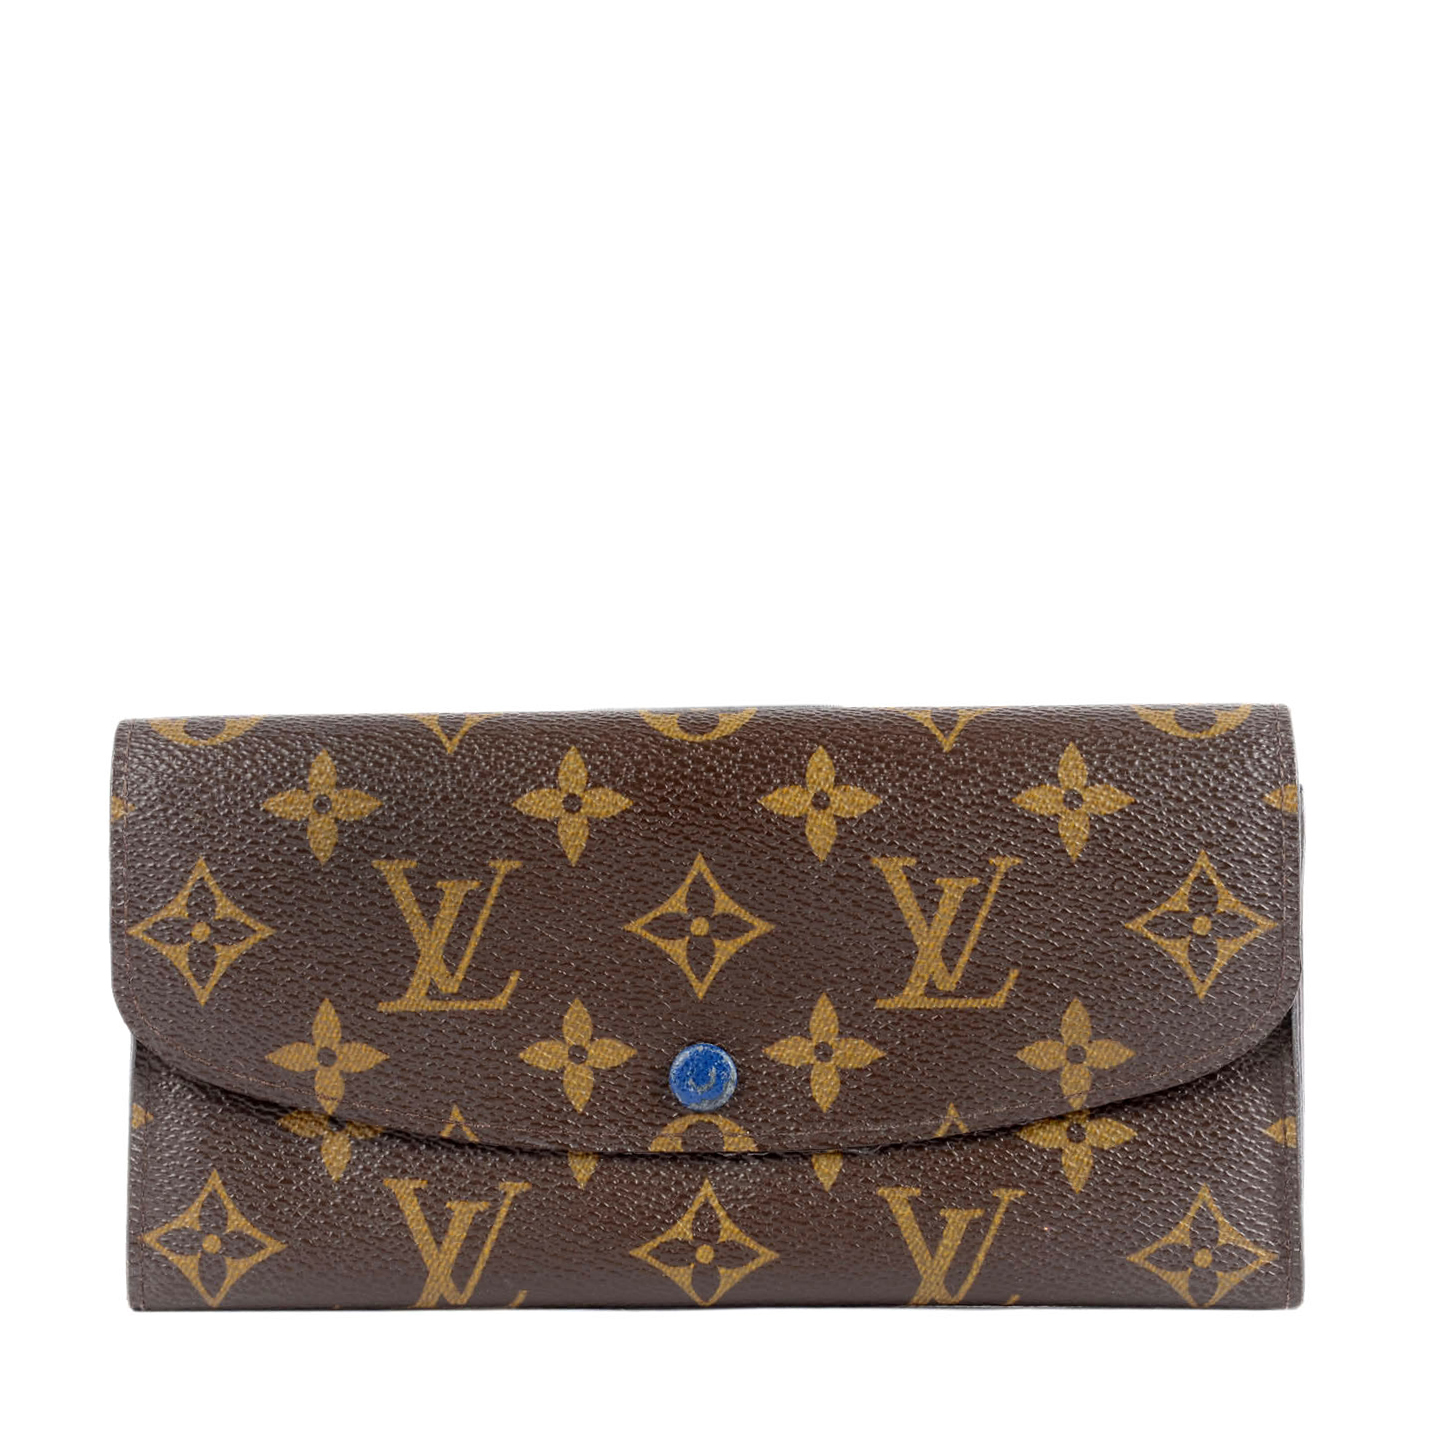 Louis Vuitton Monogram Emilie Wallet-1